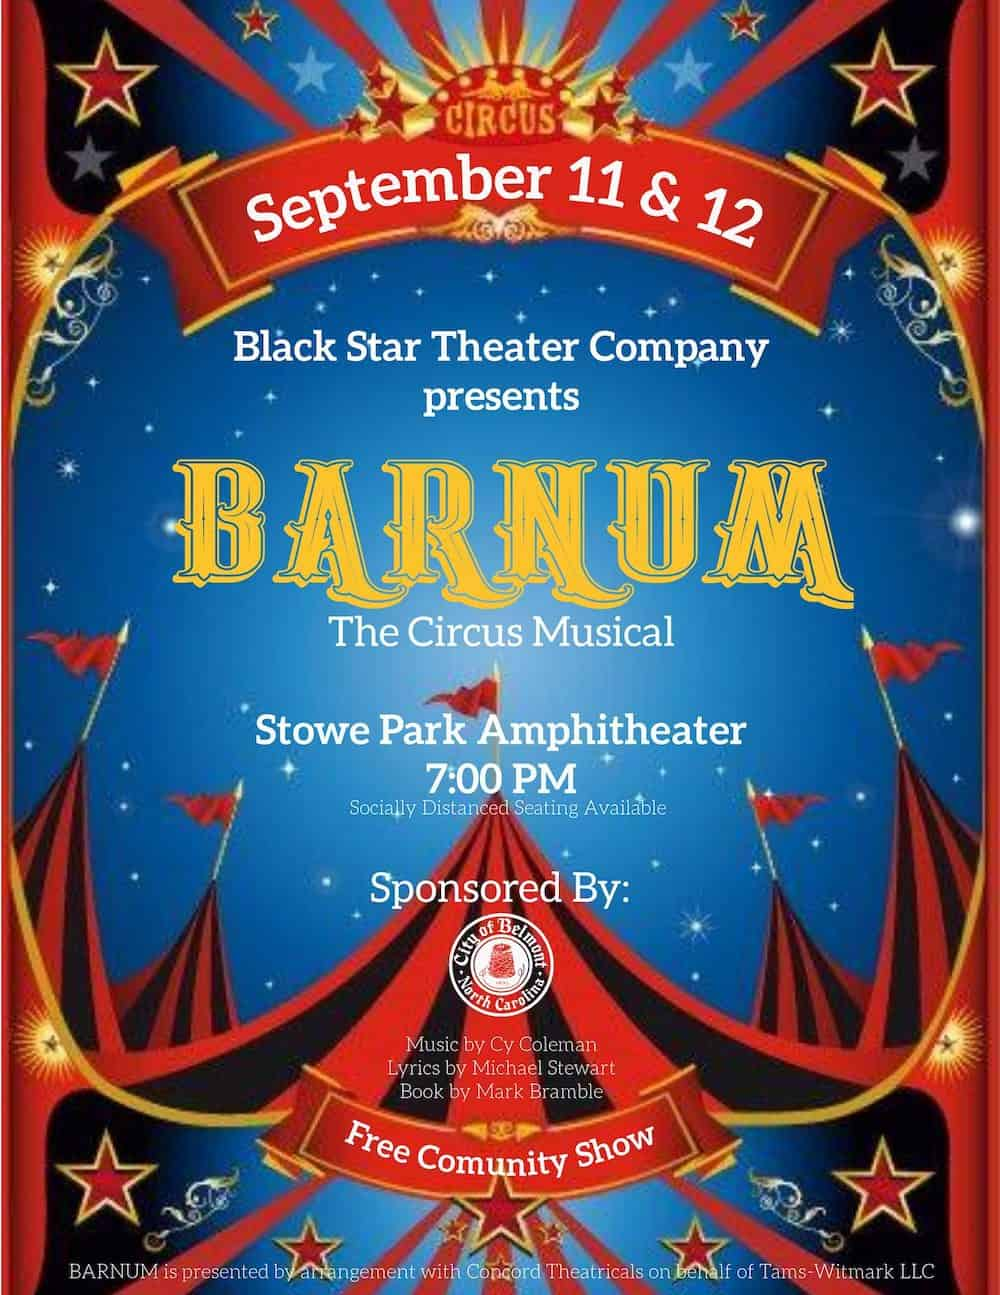 Free Show In Belmont S Stowe Park Black Star Theater Company S Barnum The Circus Musical Charlotte On The Cheap